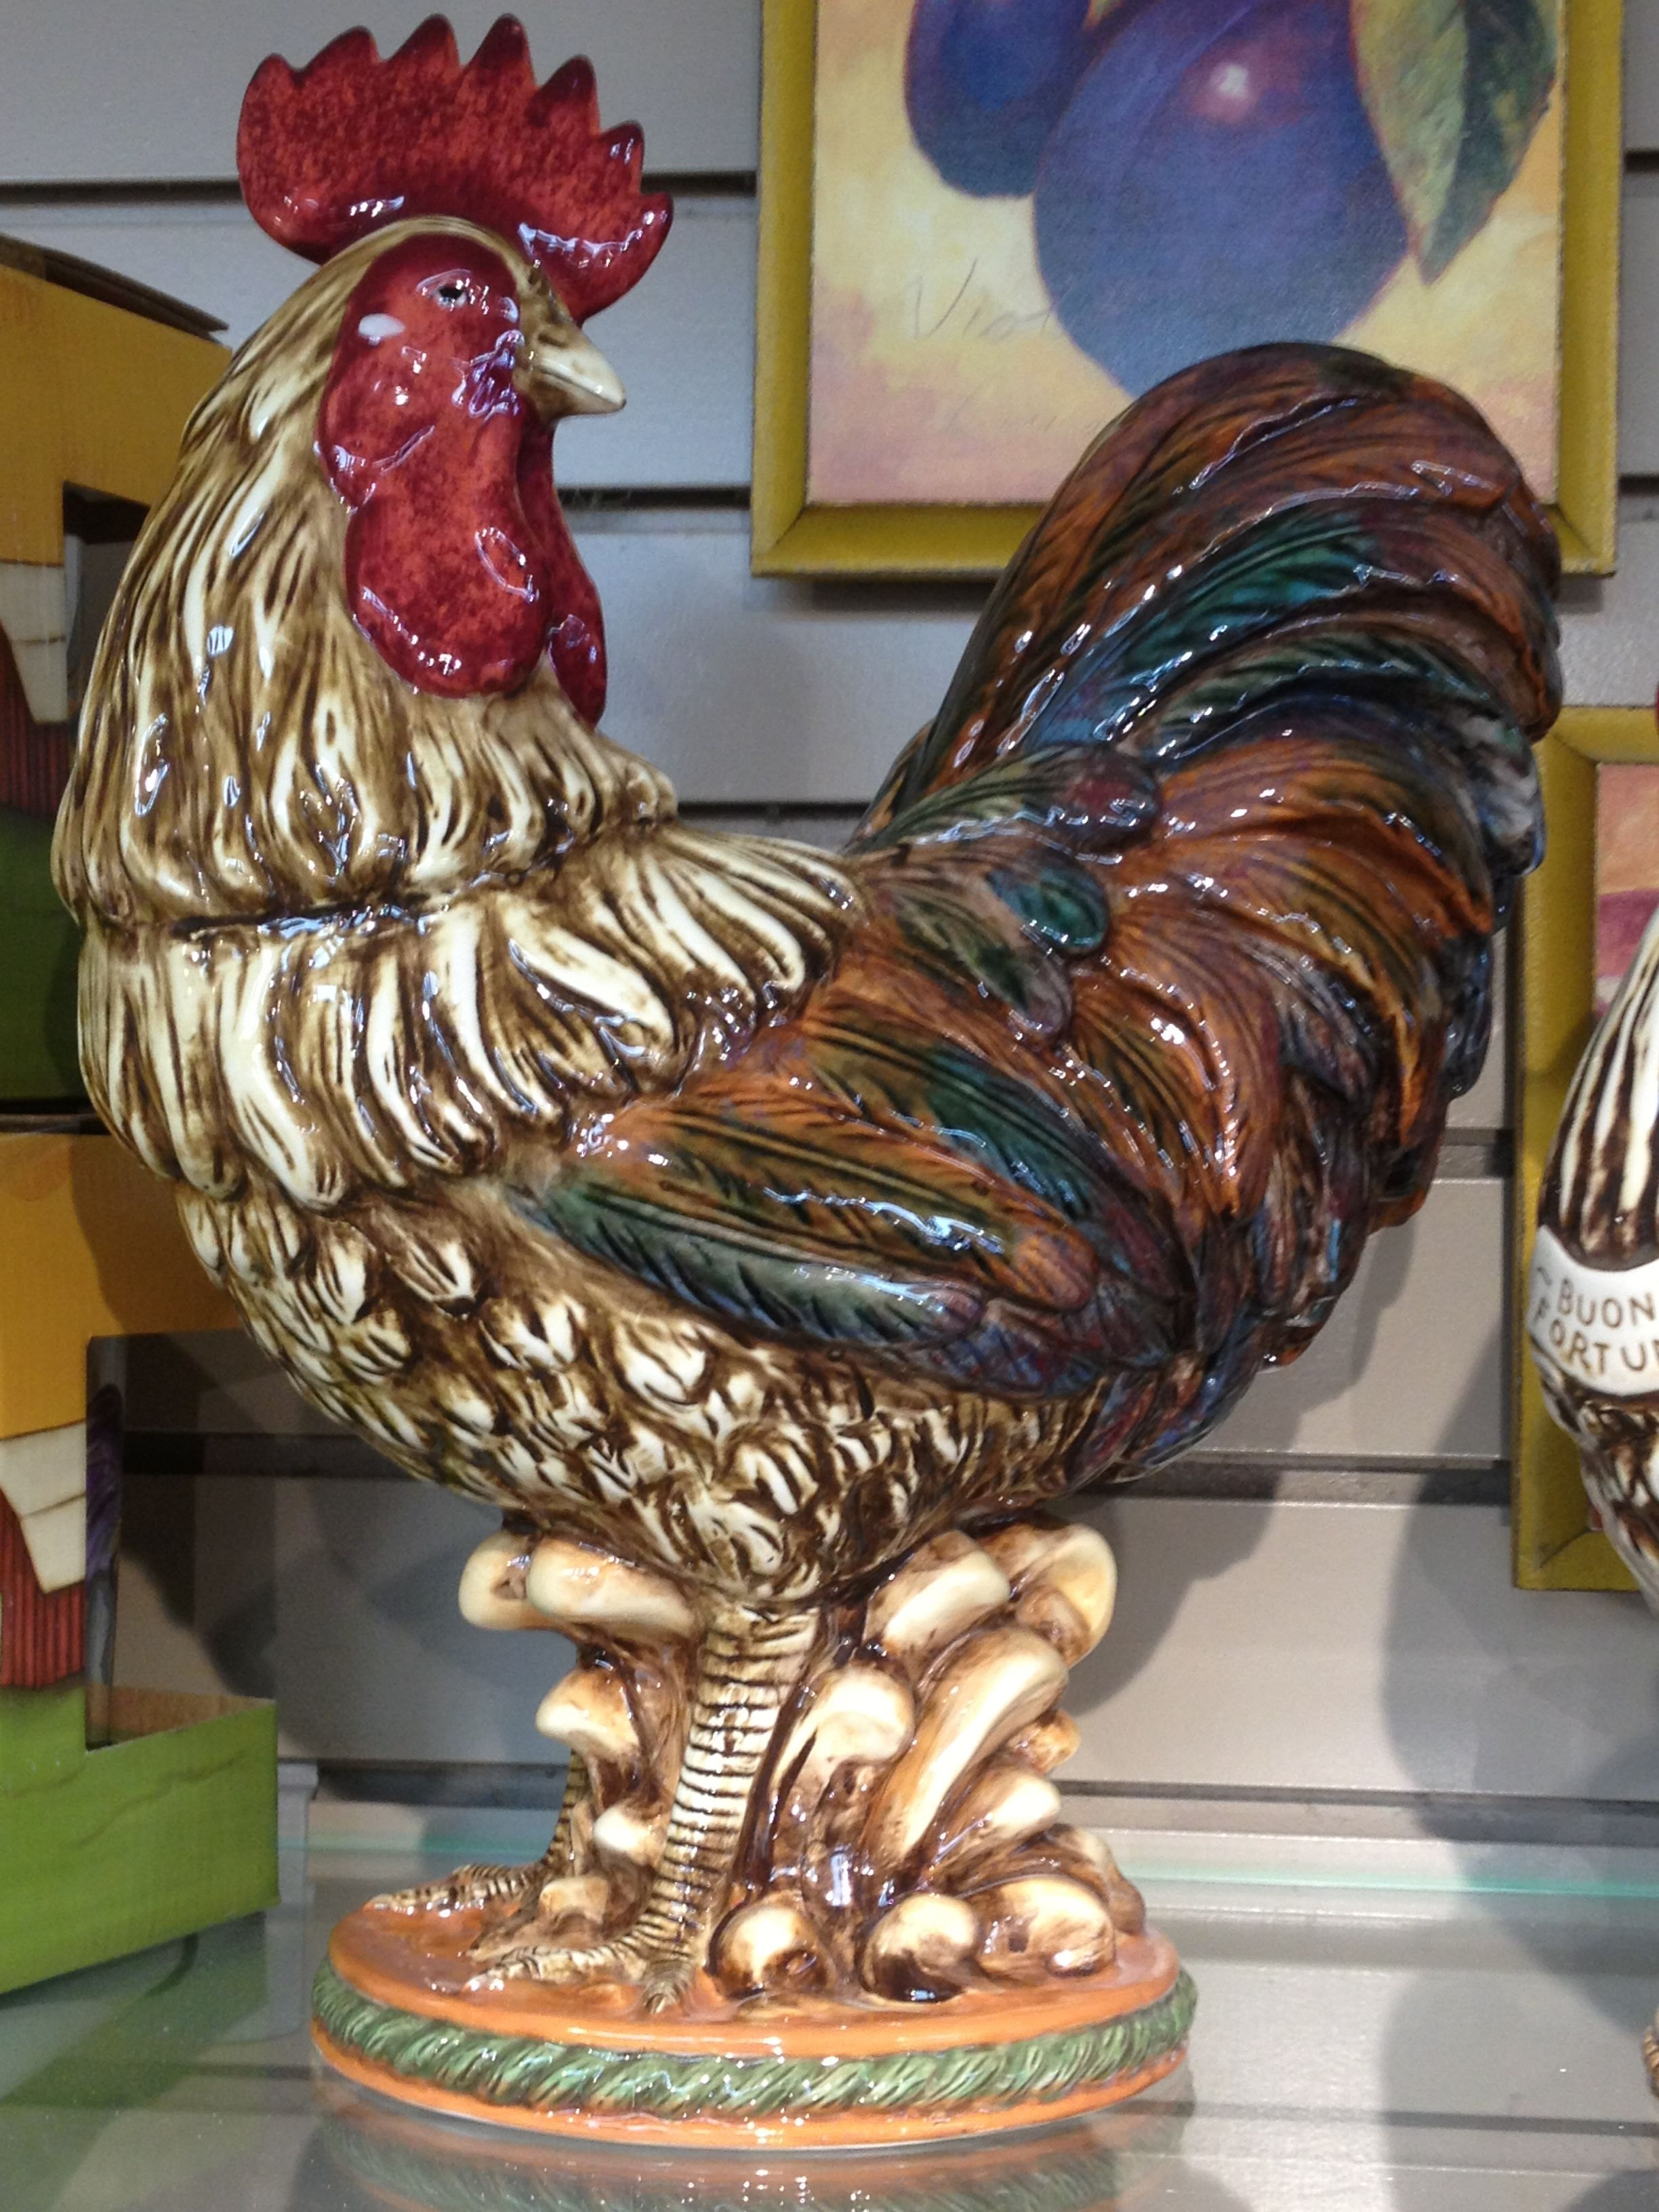 Rooster Decor In Living Room: New Ceramic Roosters Available In Two Sizes.